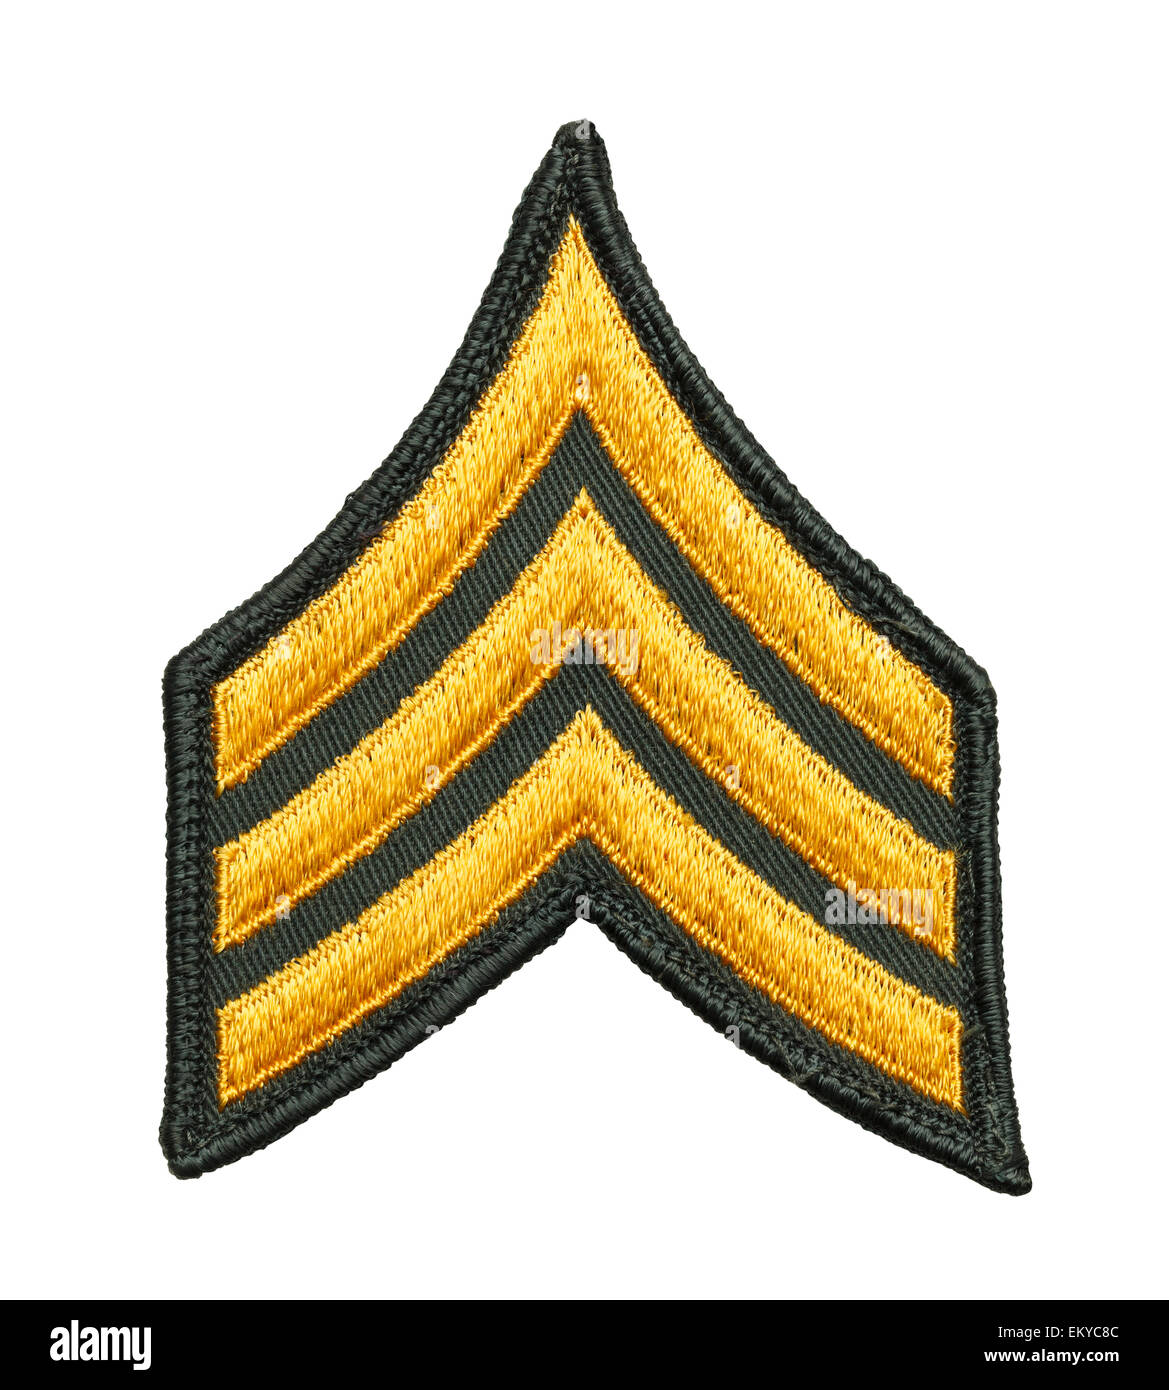 Three Striped Army Patch Isolated on White Background. - Stock Image